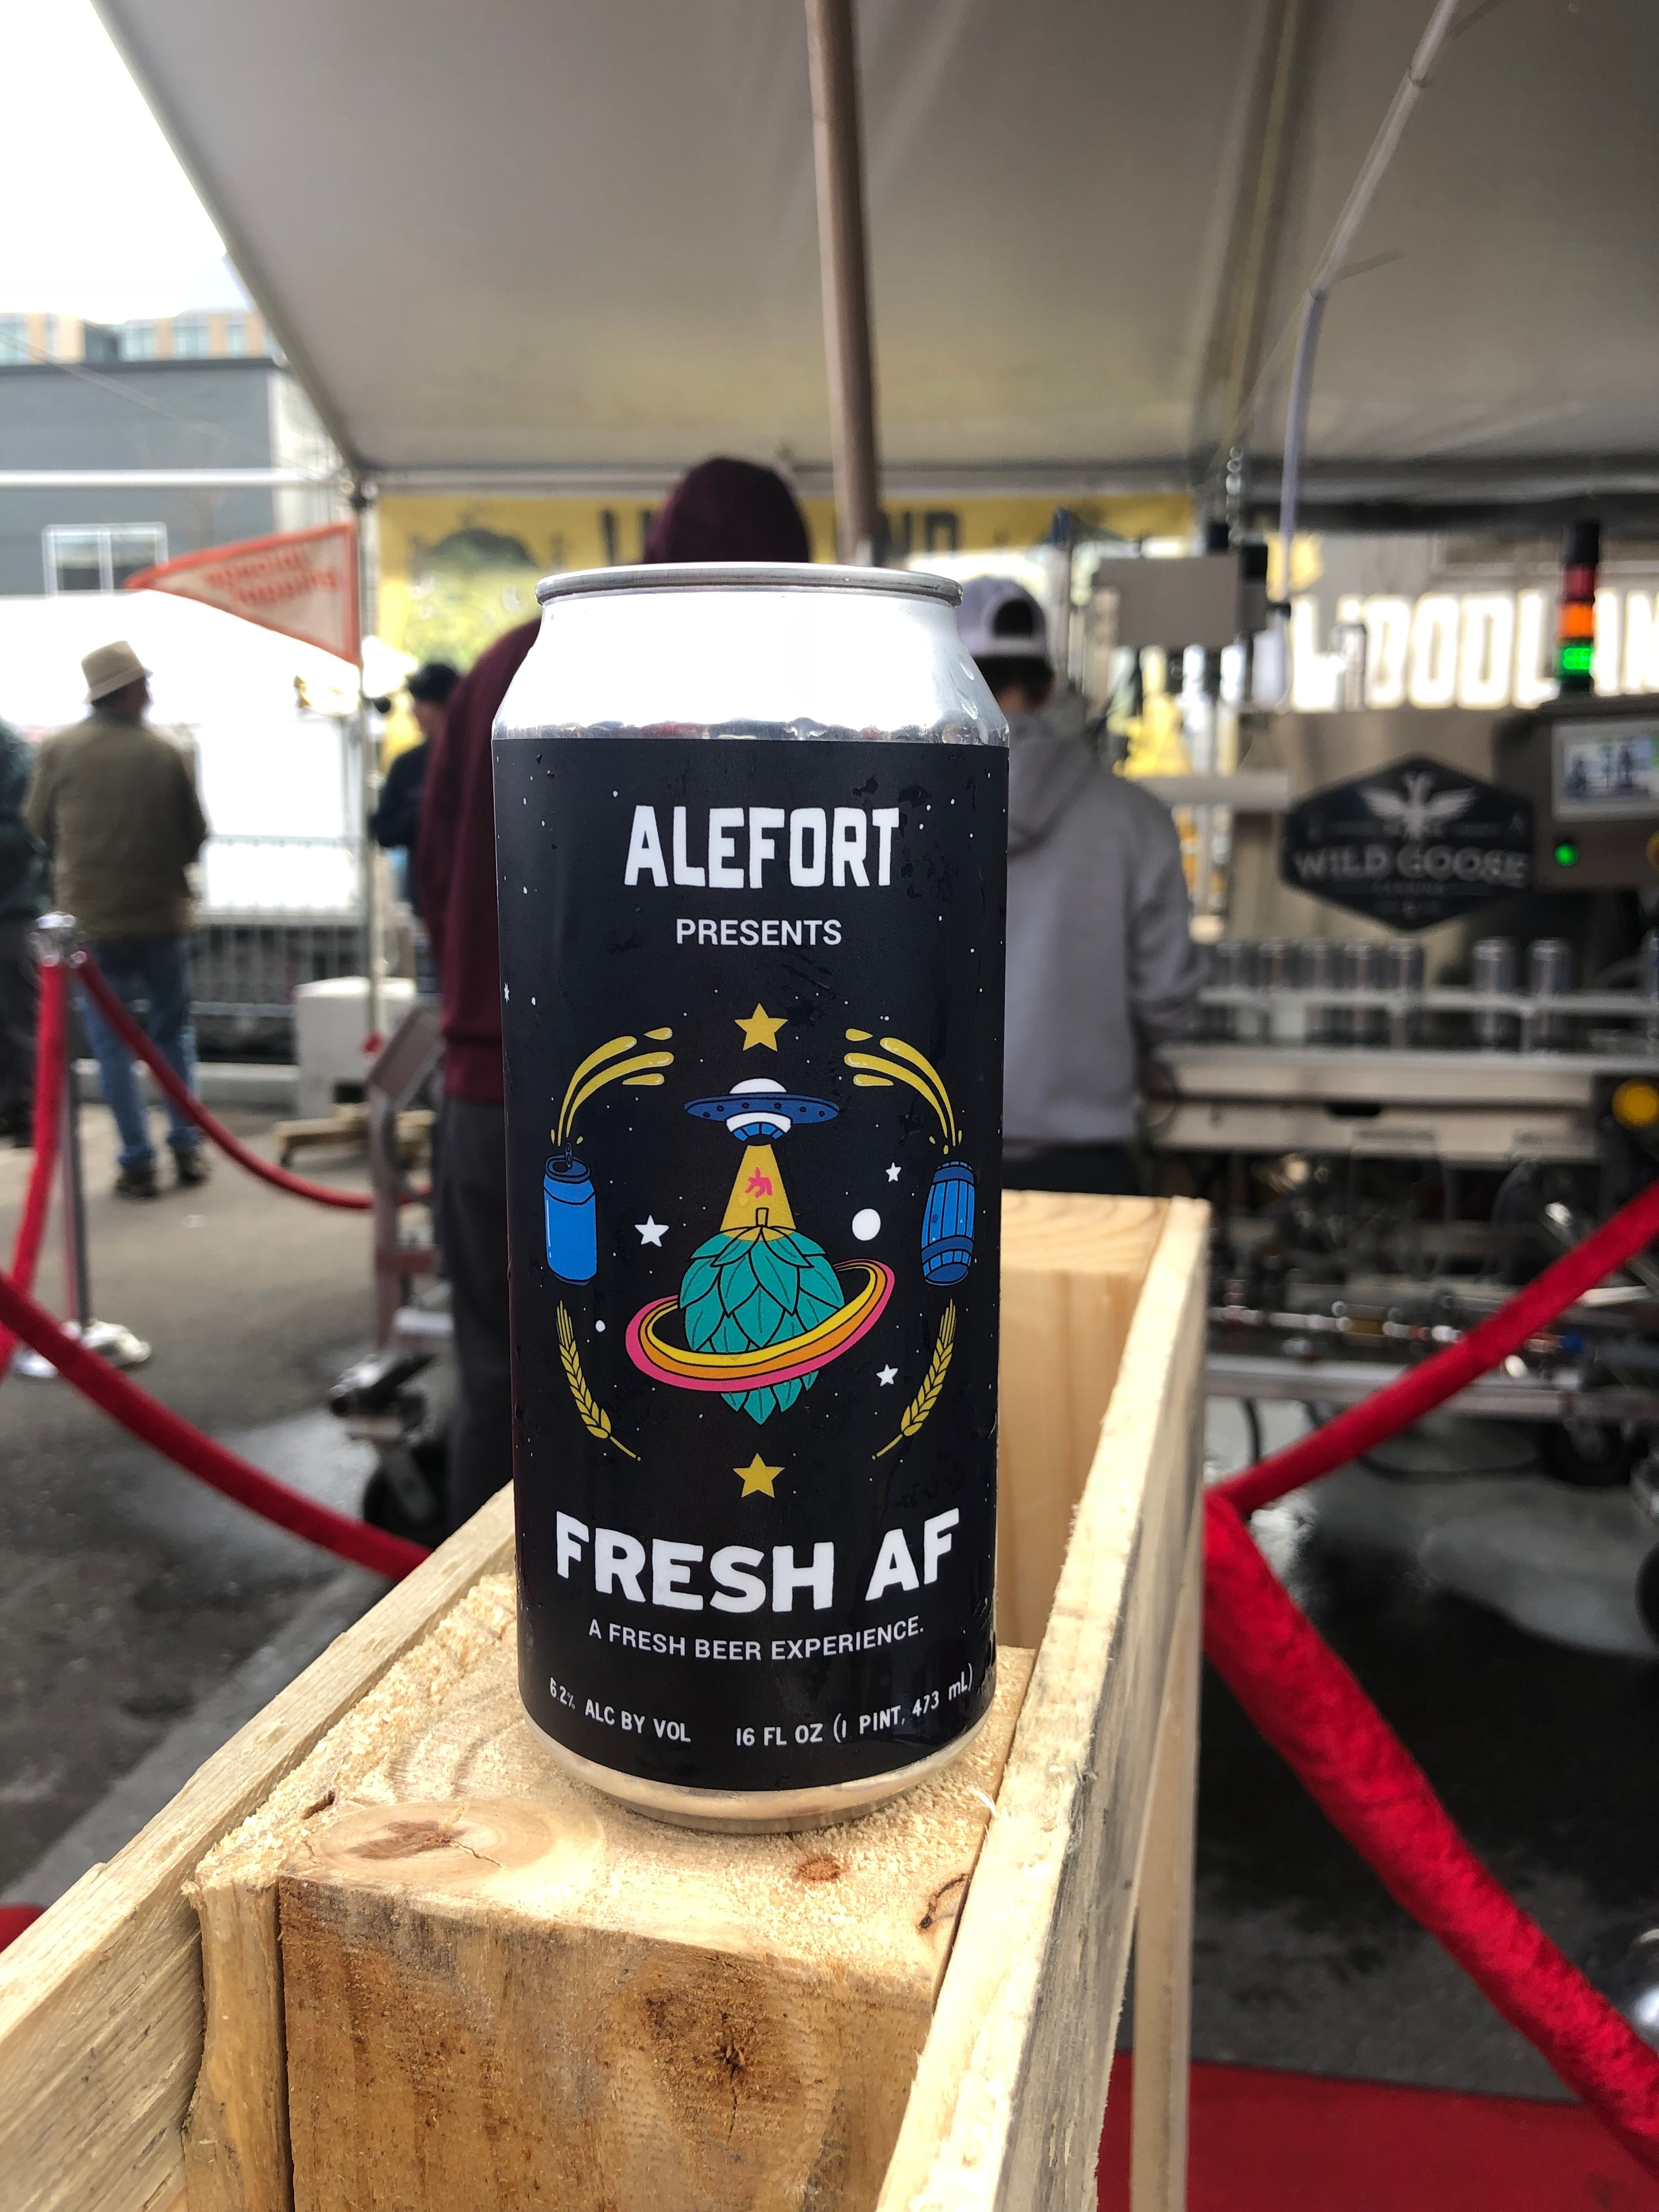 A can of Fresh AF from Woodland Empire Ale Craft at Alefort.